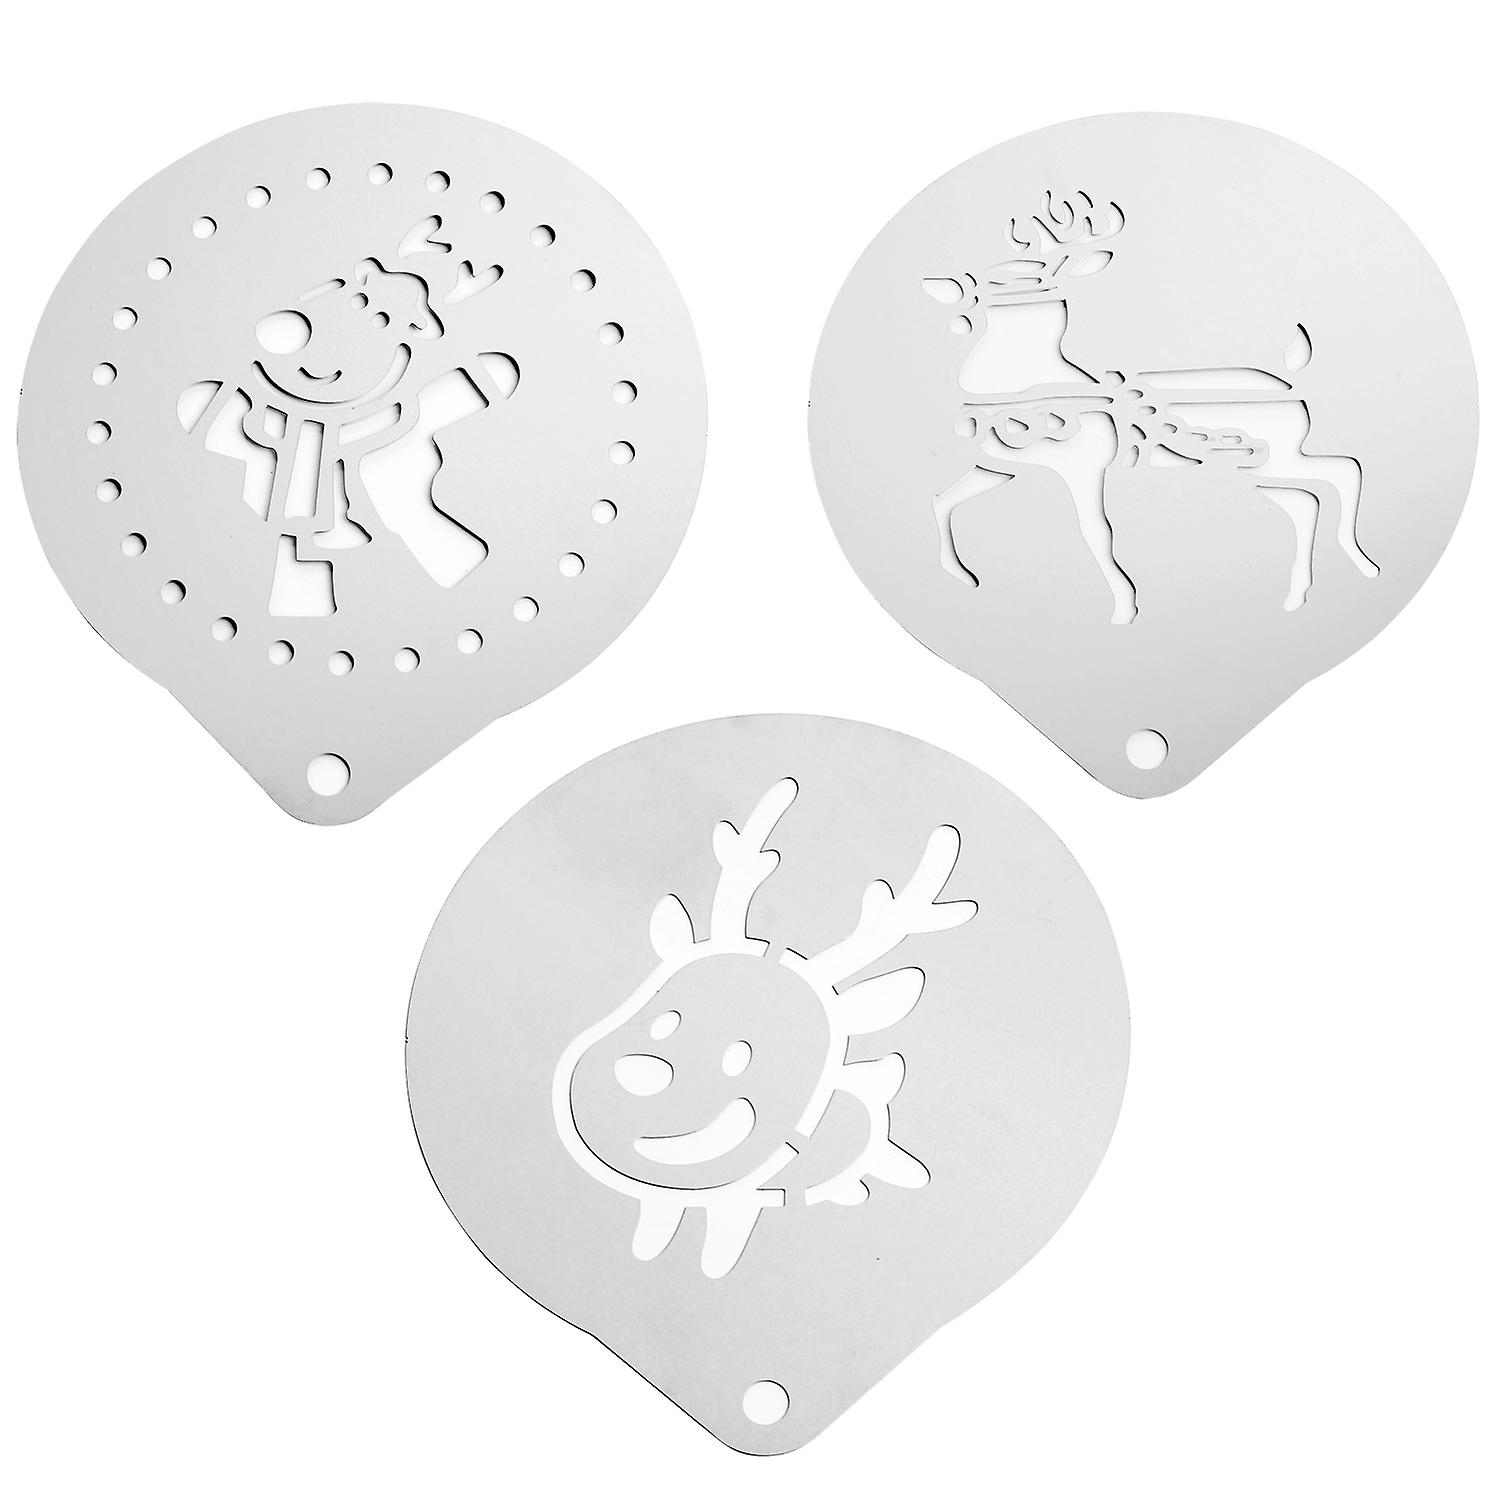 TRIXES Coffee Stencils for Christmas - 3 pc kit - Novelty Classic Design (3PC Reindeer Assorted)